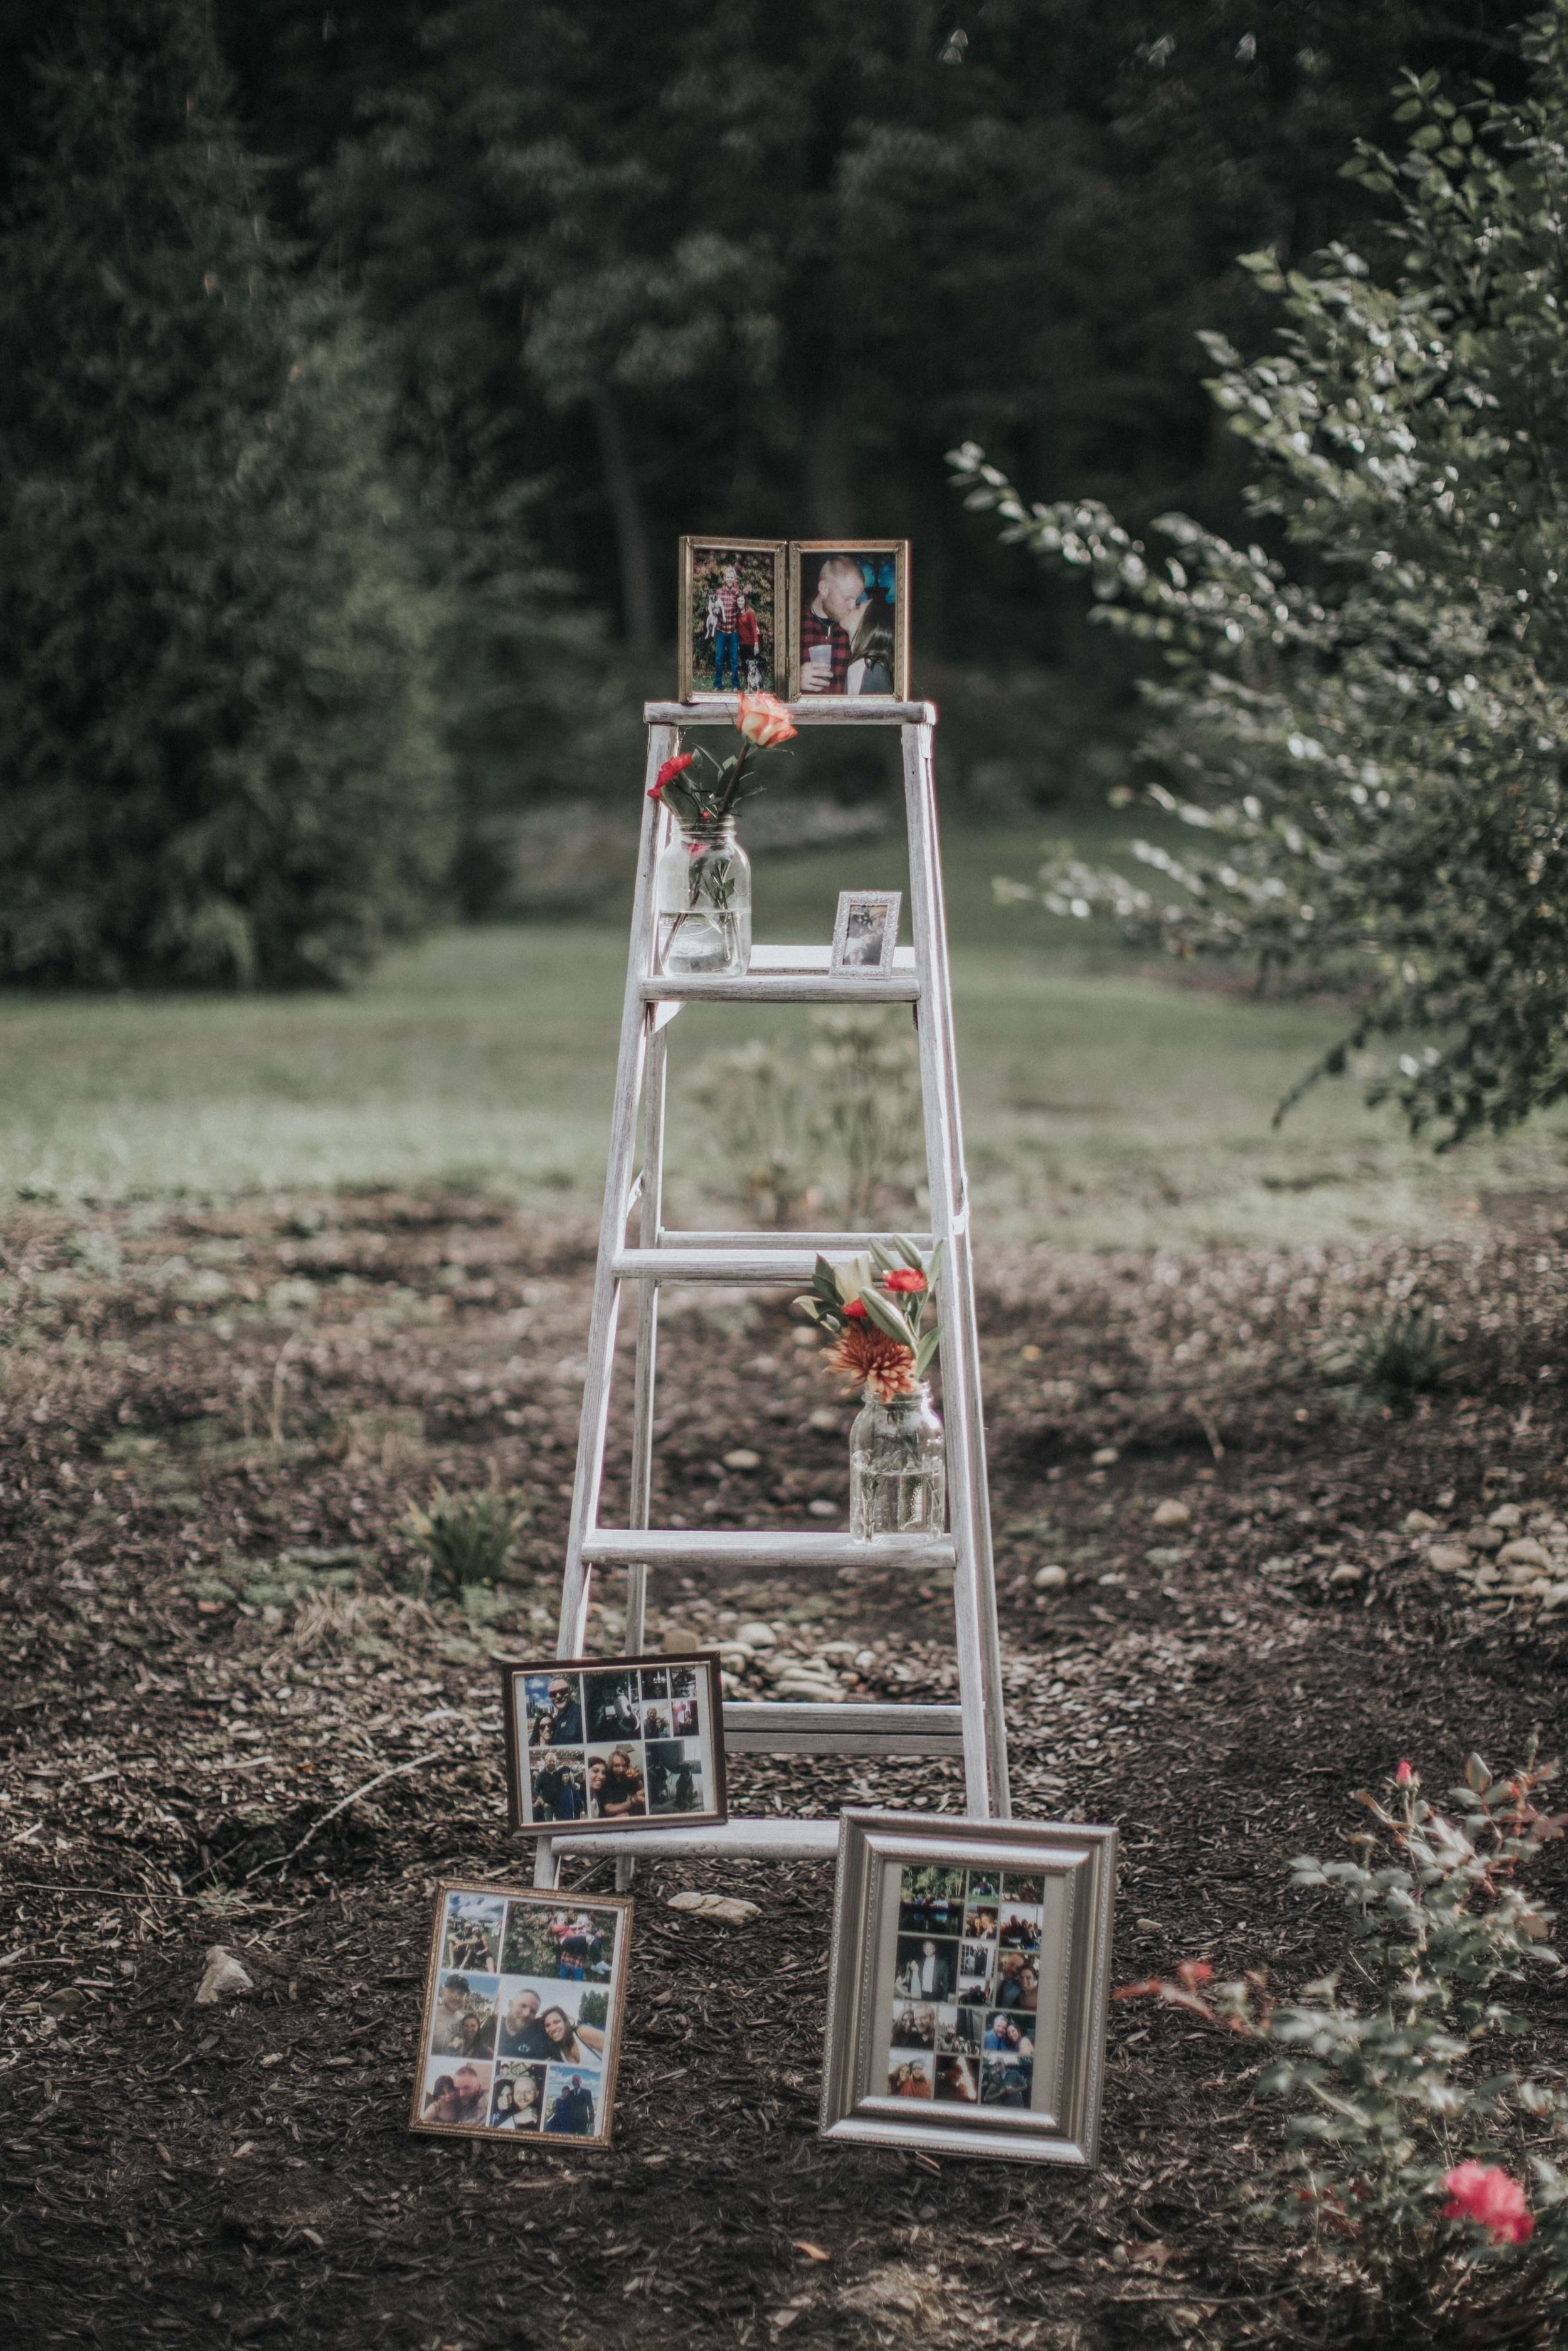 Ladder displaying wedding reception decor in the woods for rustic wedding in Farmington, PA planned by Exhale Events. Find more wedding inspiration at exhale-events.com!